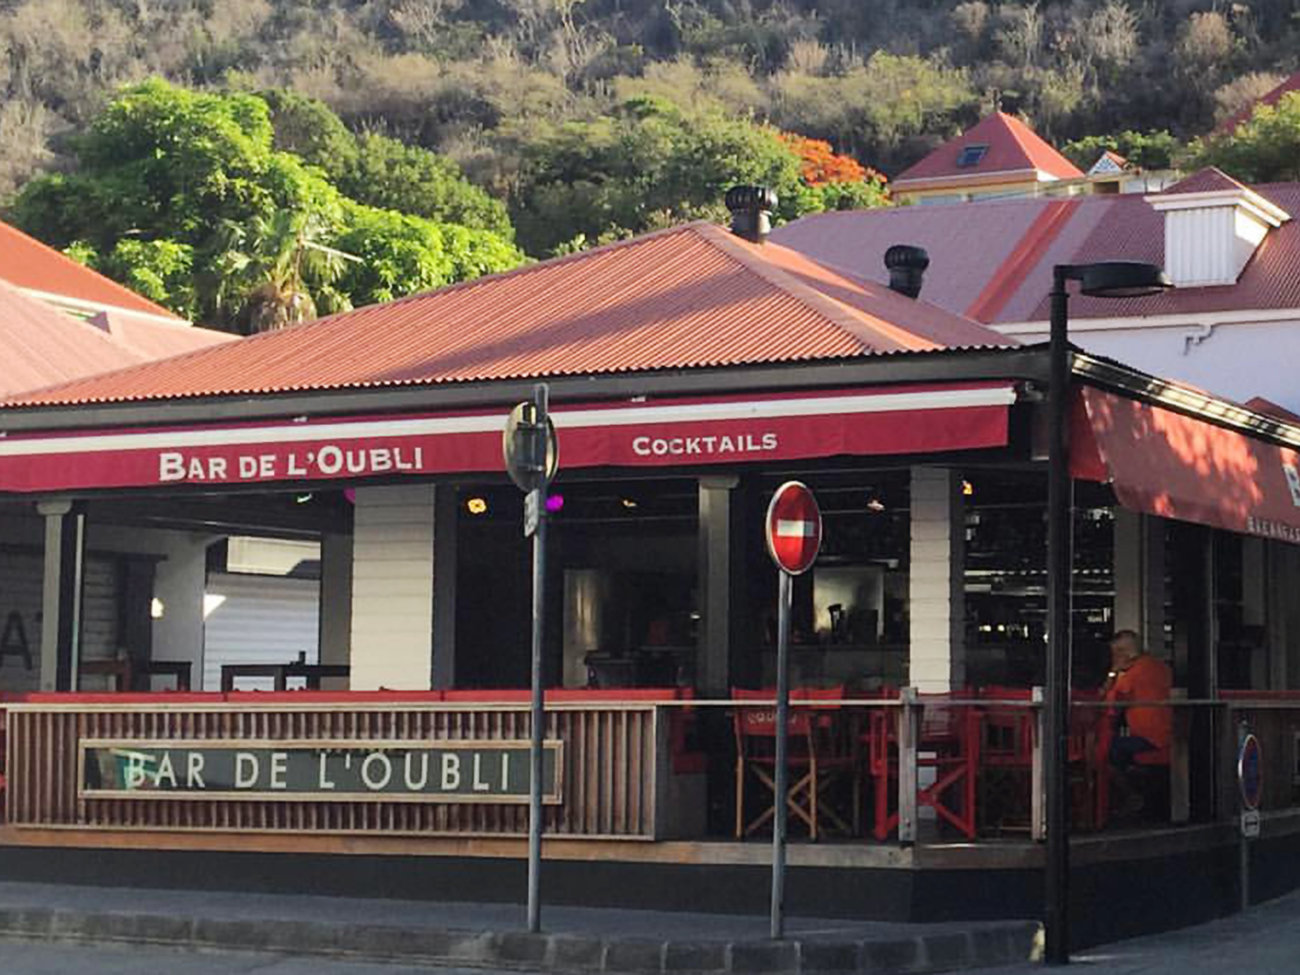 Bar de L'Oubli in St. Barts